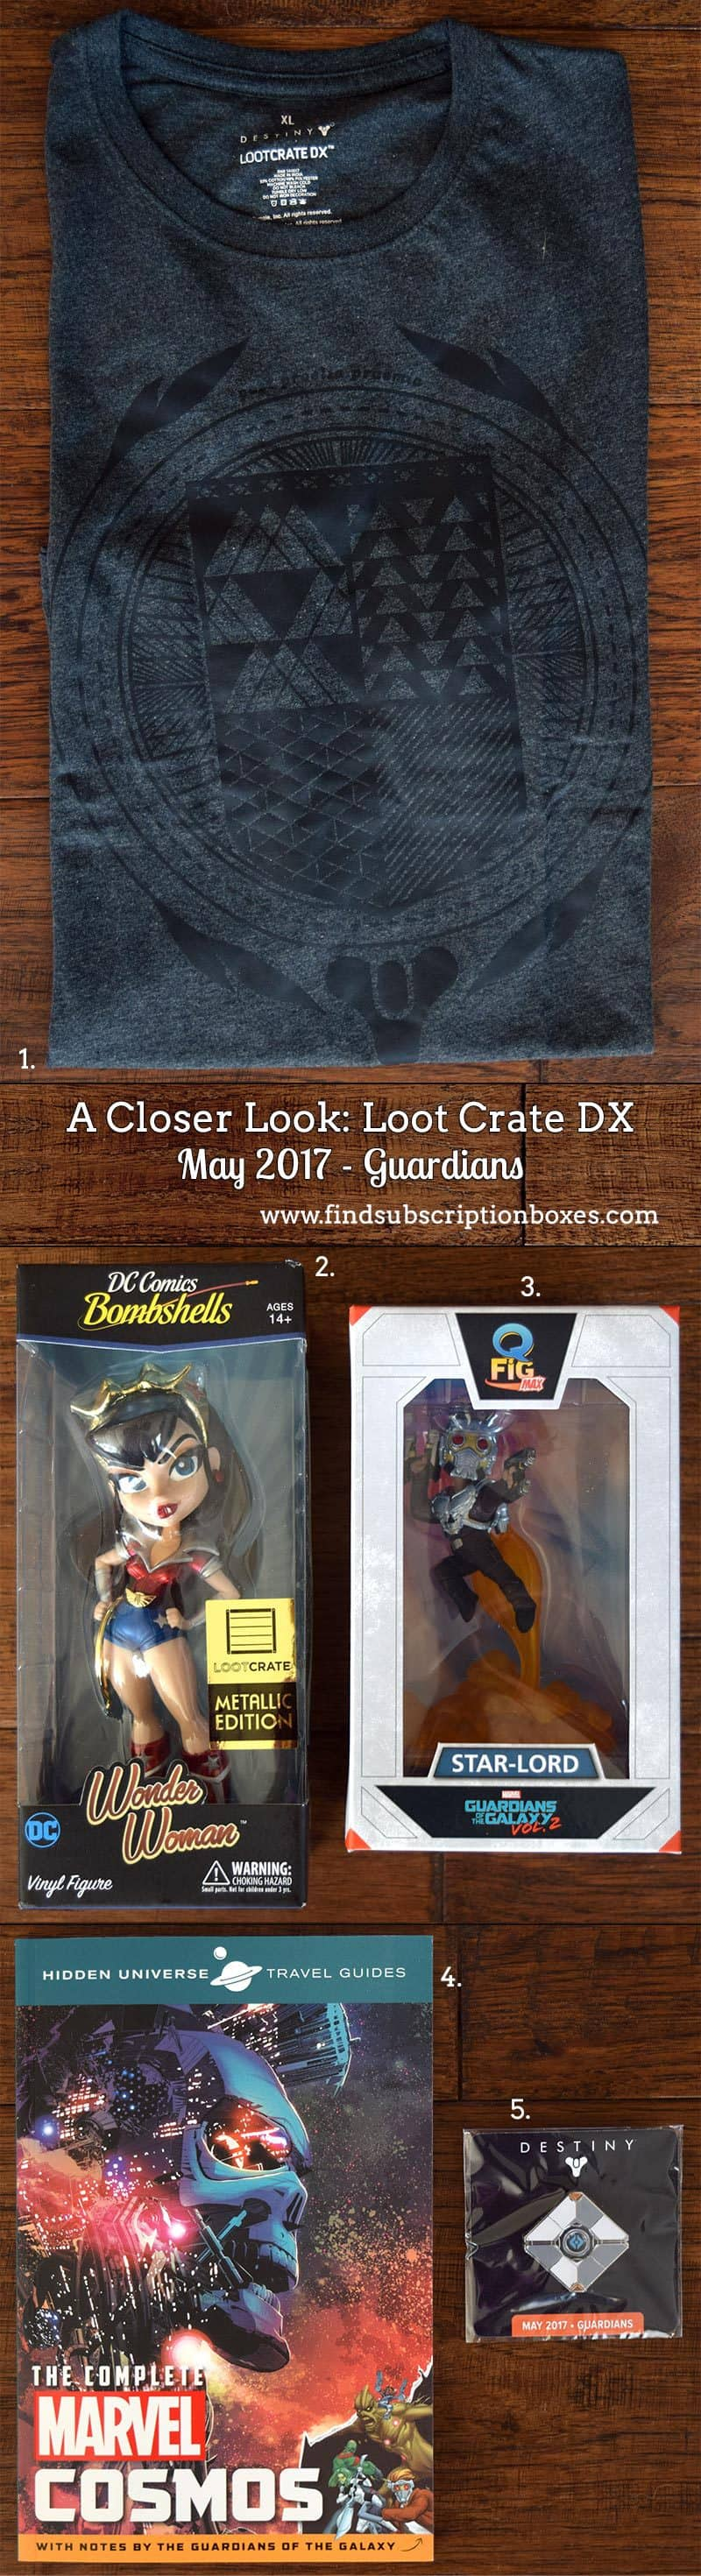 May 2017 Loot Crate DX Review - Guardians Crate - Inside the Box